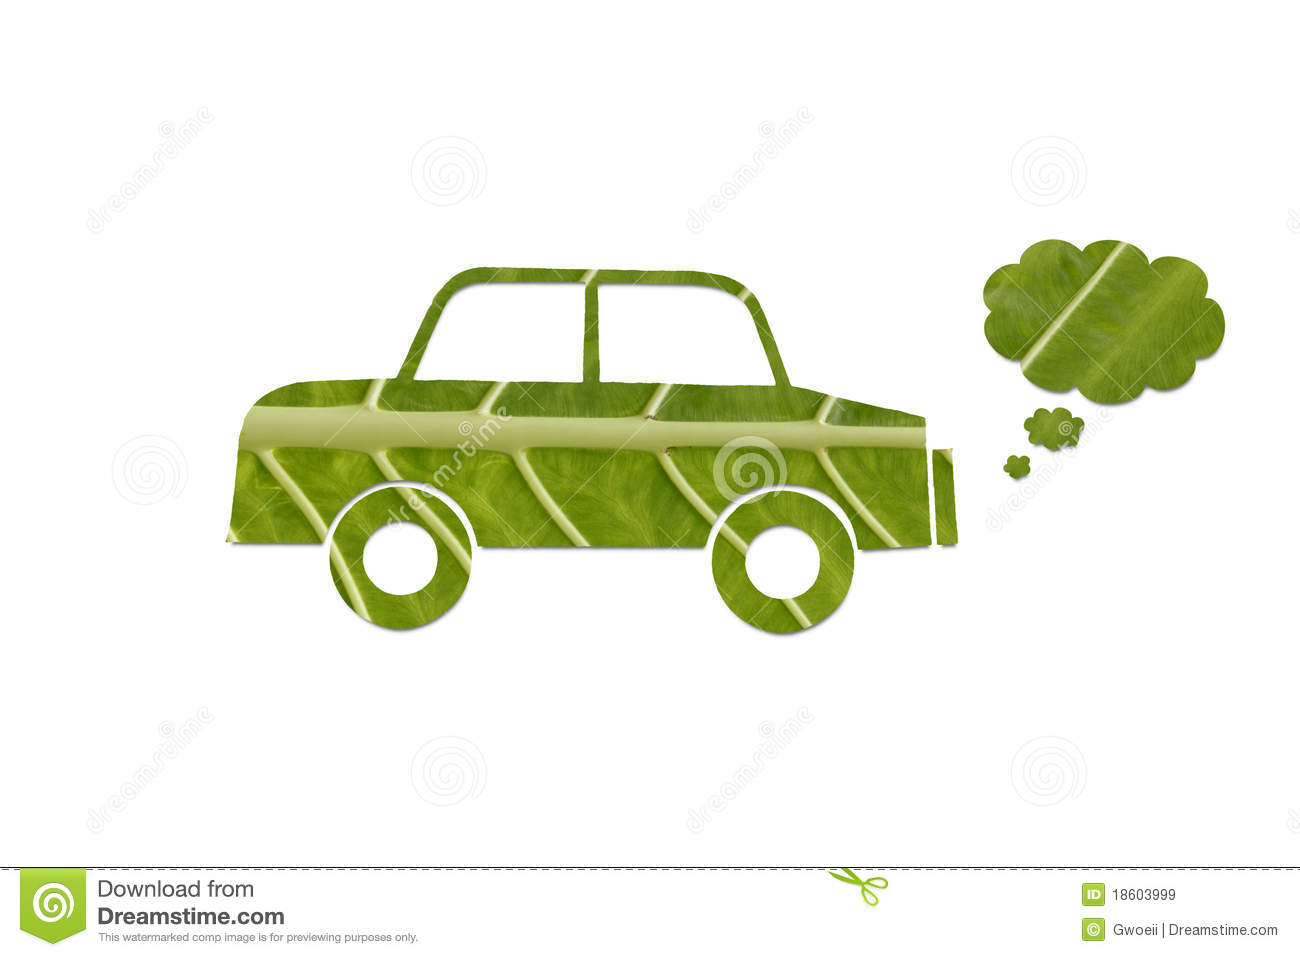 buying eco friendly cars Eco-friendly cars are relatively new to the market, but drivers are quickly picking up on the many benefits that eco-friendly cars offer read on to learn about some of the benefits that eco-friendly cars offer drivers and the environment.